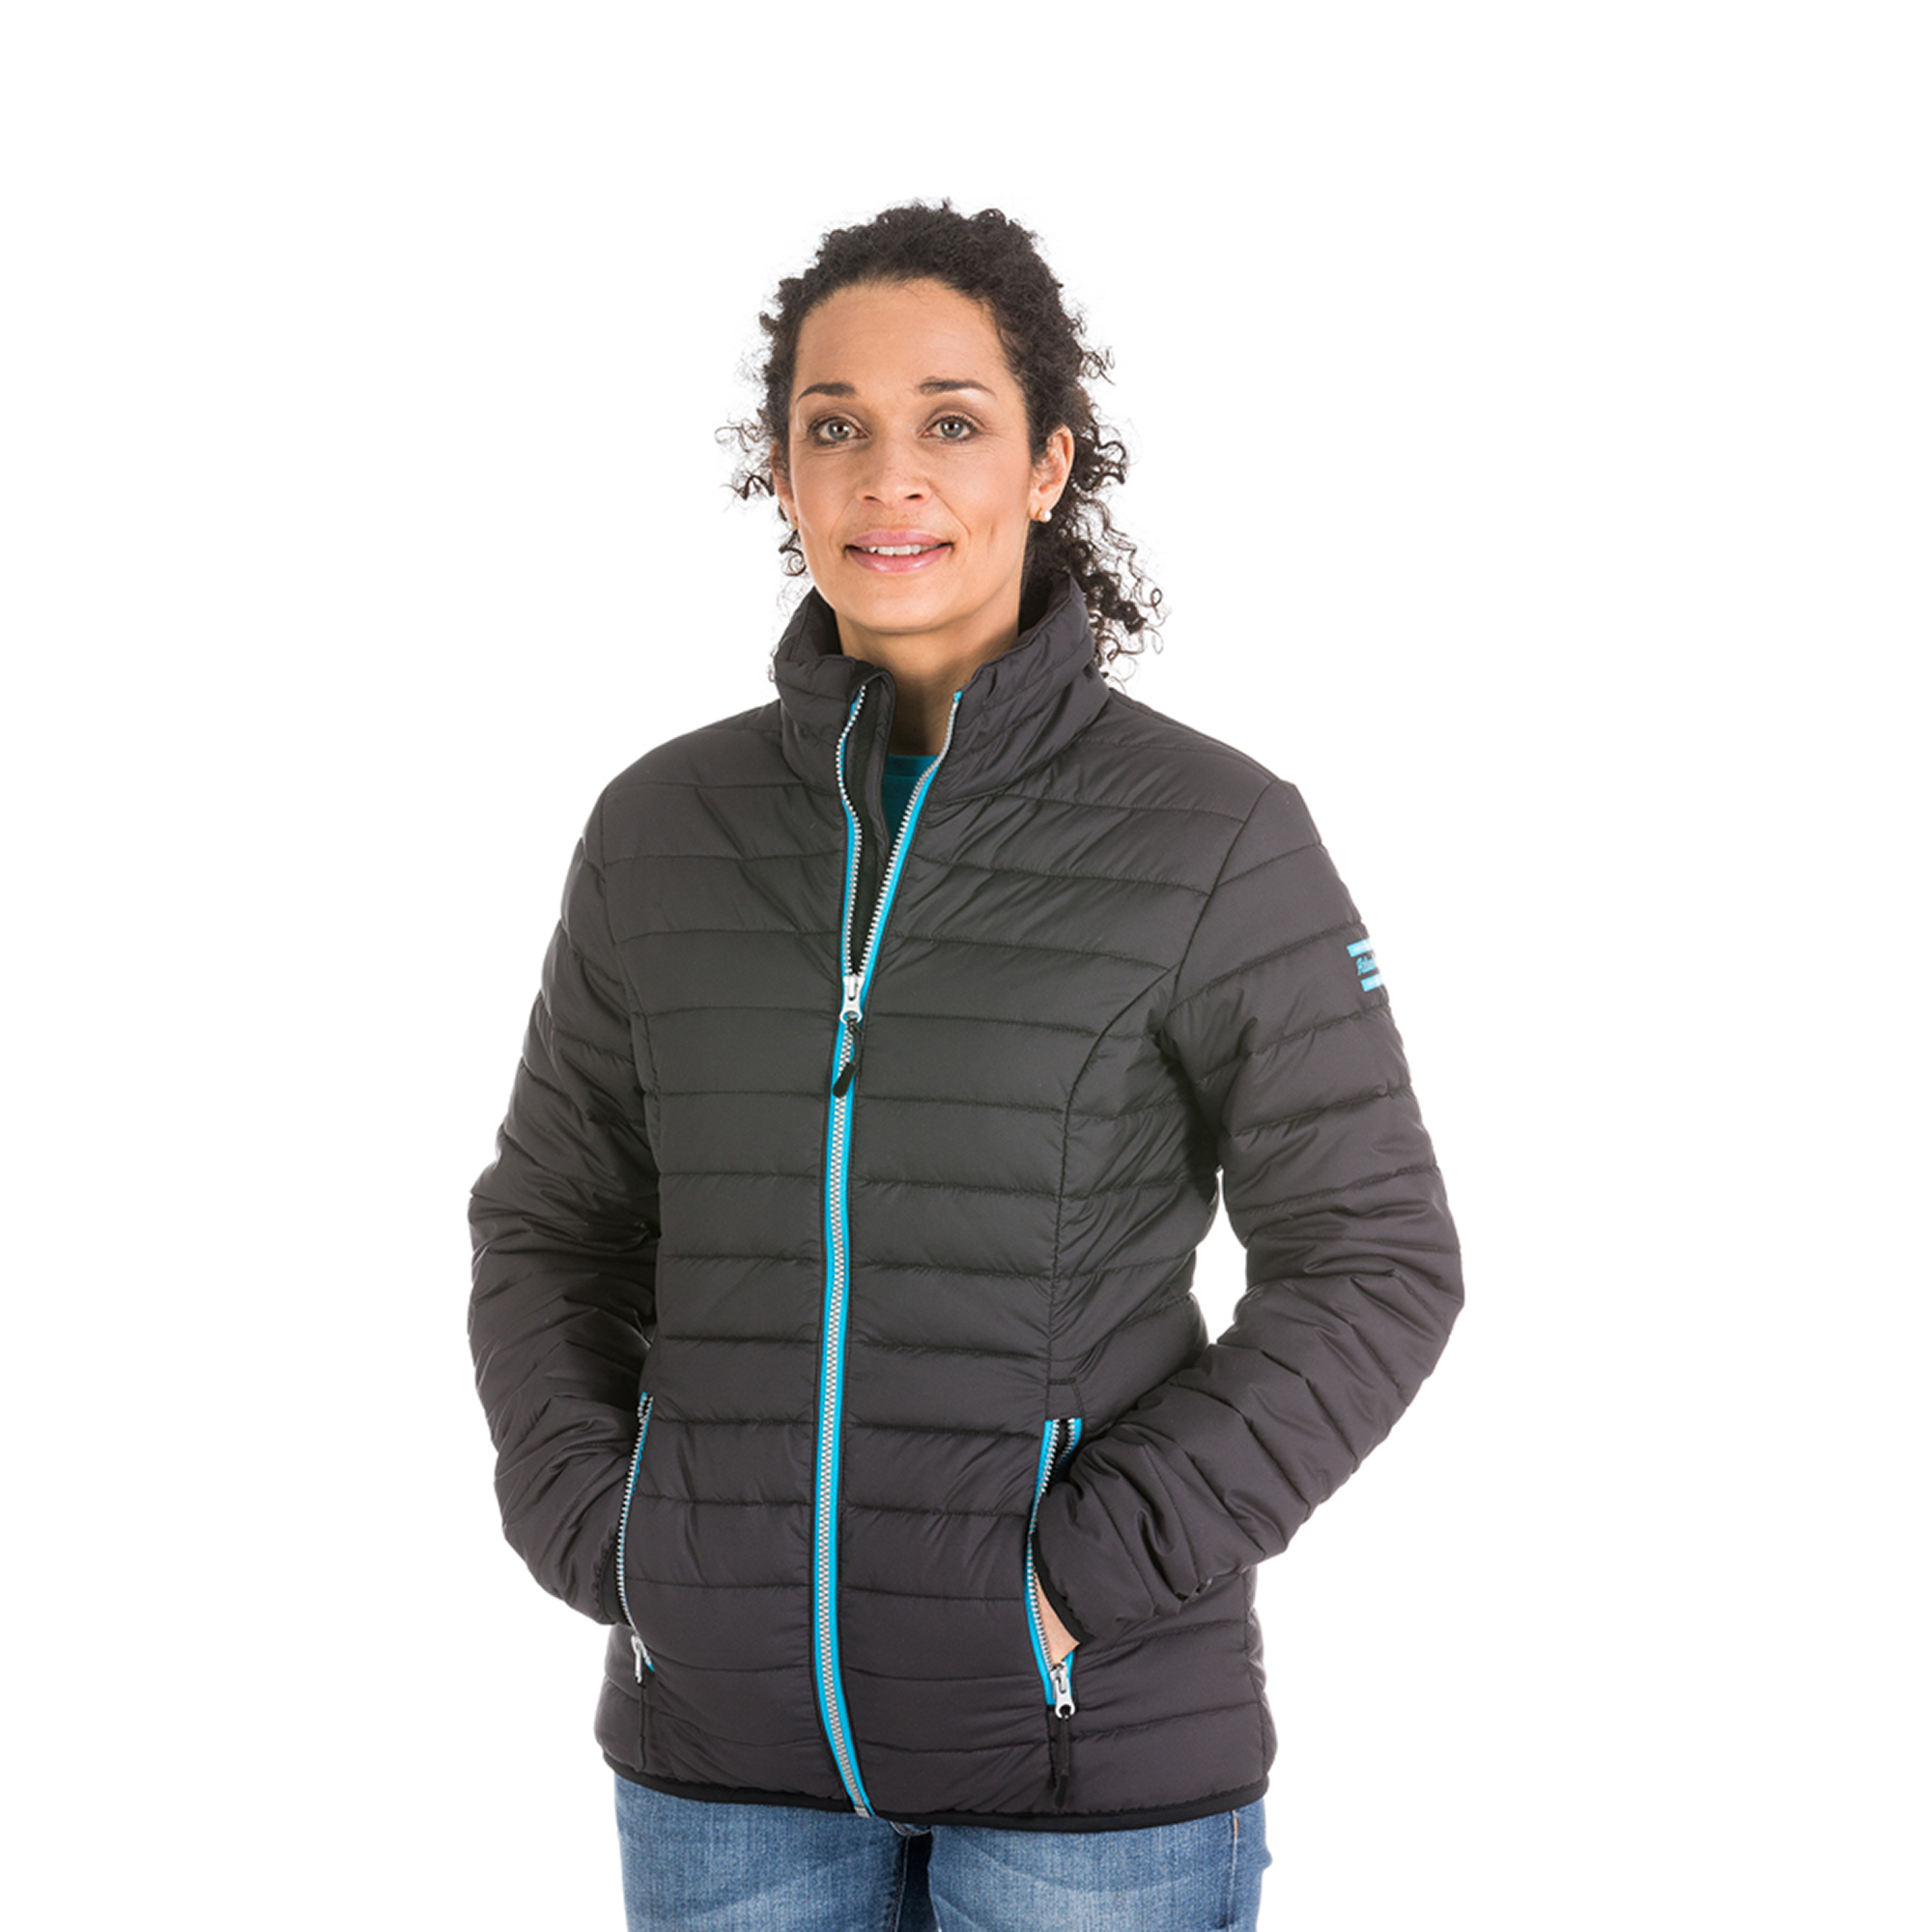 A stylish and comfortable jacket designed to make you look good and feel good. The Stockholm jacket is bluesign® certified and sustainability is at the heart of its design. The outer fabric and lining of the Stockholm jacket are made entirely from recycled PET bottles. The padding is Theremore®. This is an insulating material that is an impressive 90% air – the remaining 10% is recycled polyester. We hope you will appreciate the Stockholm jacket and be proud to wear it.